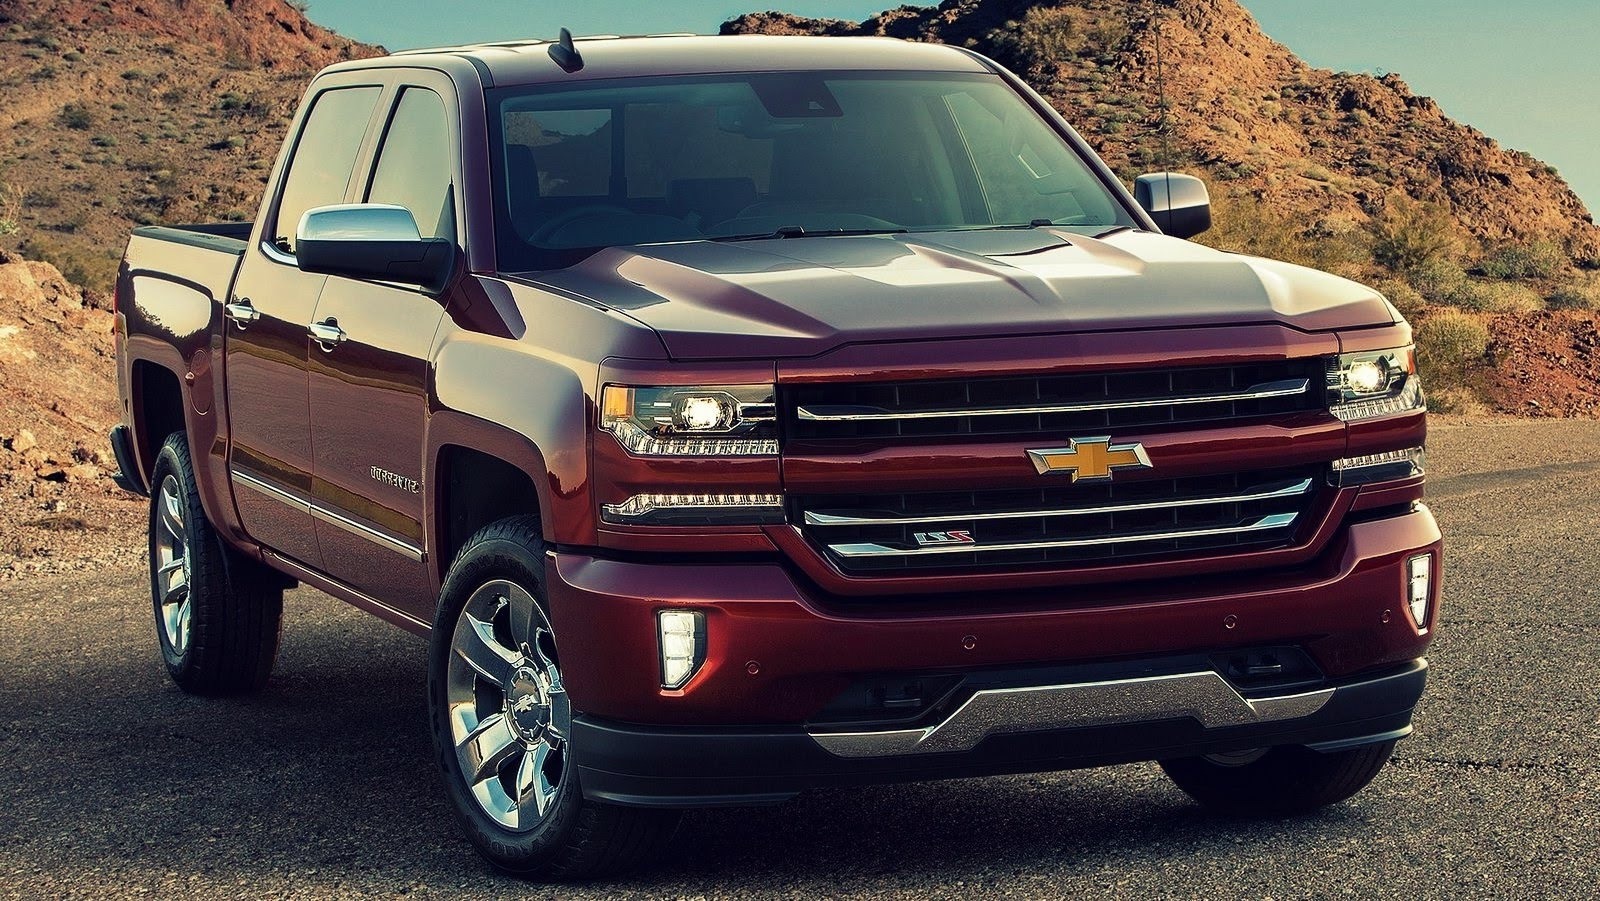 team chevy rodeo highlights the new 2016 chevy silverado 2016 chevy silverado. Black Bedroom Furniture Sets. Home Design Ideas